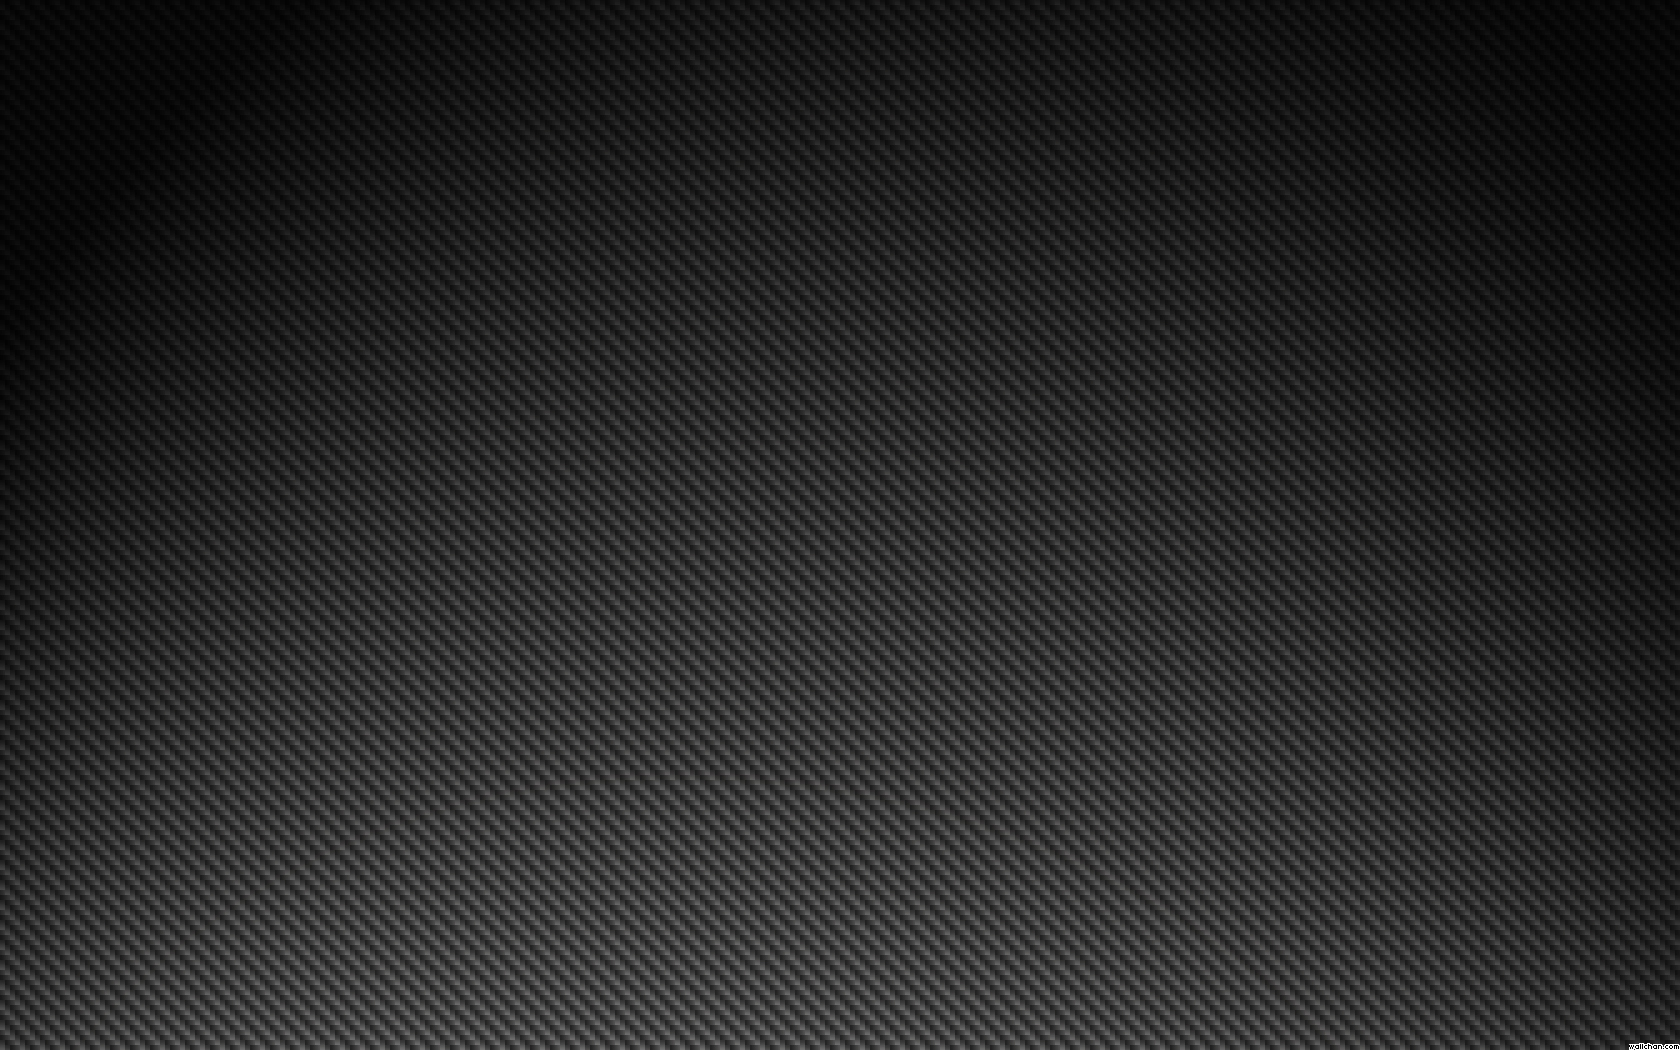 Black and White Pattern PPT Backgrounds